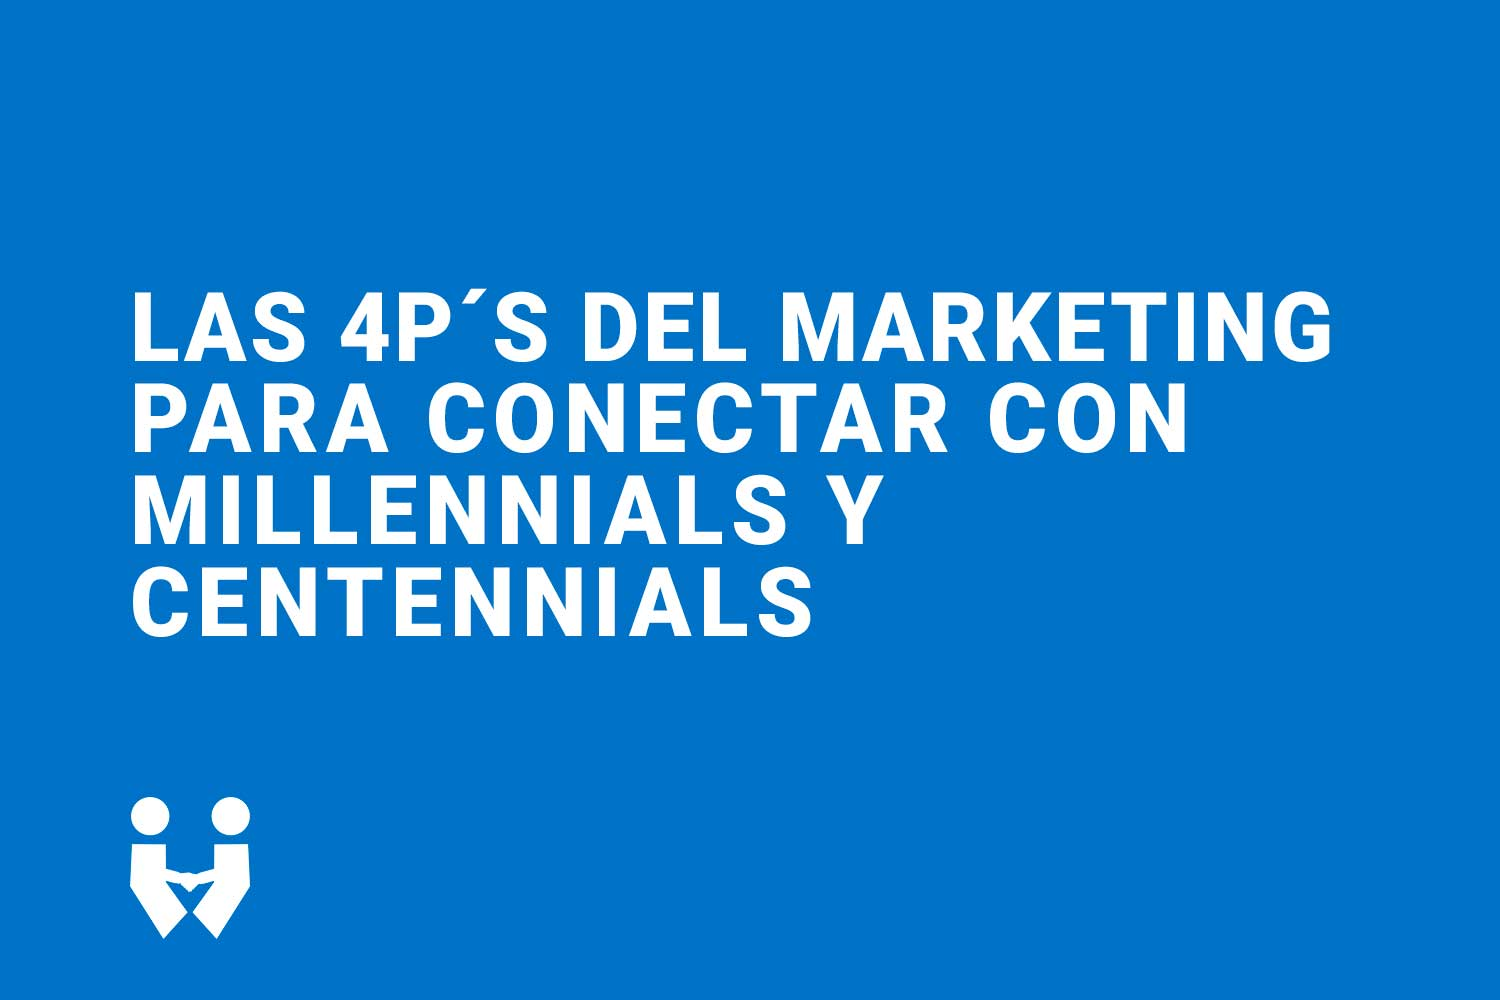 Nuevas Ps del marketing